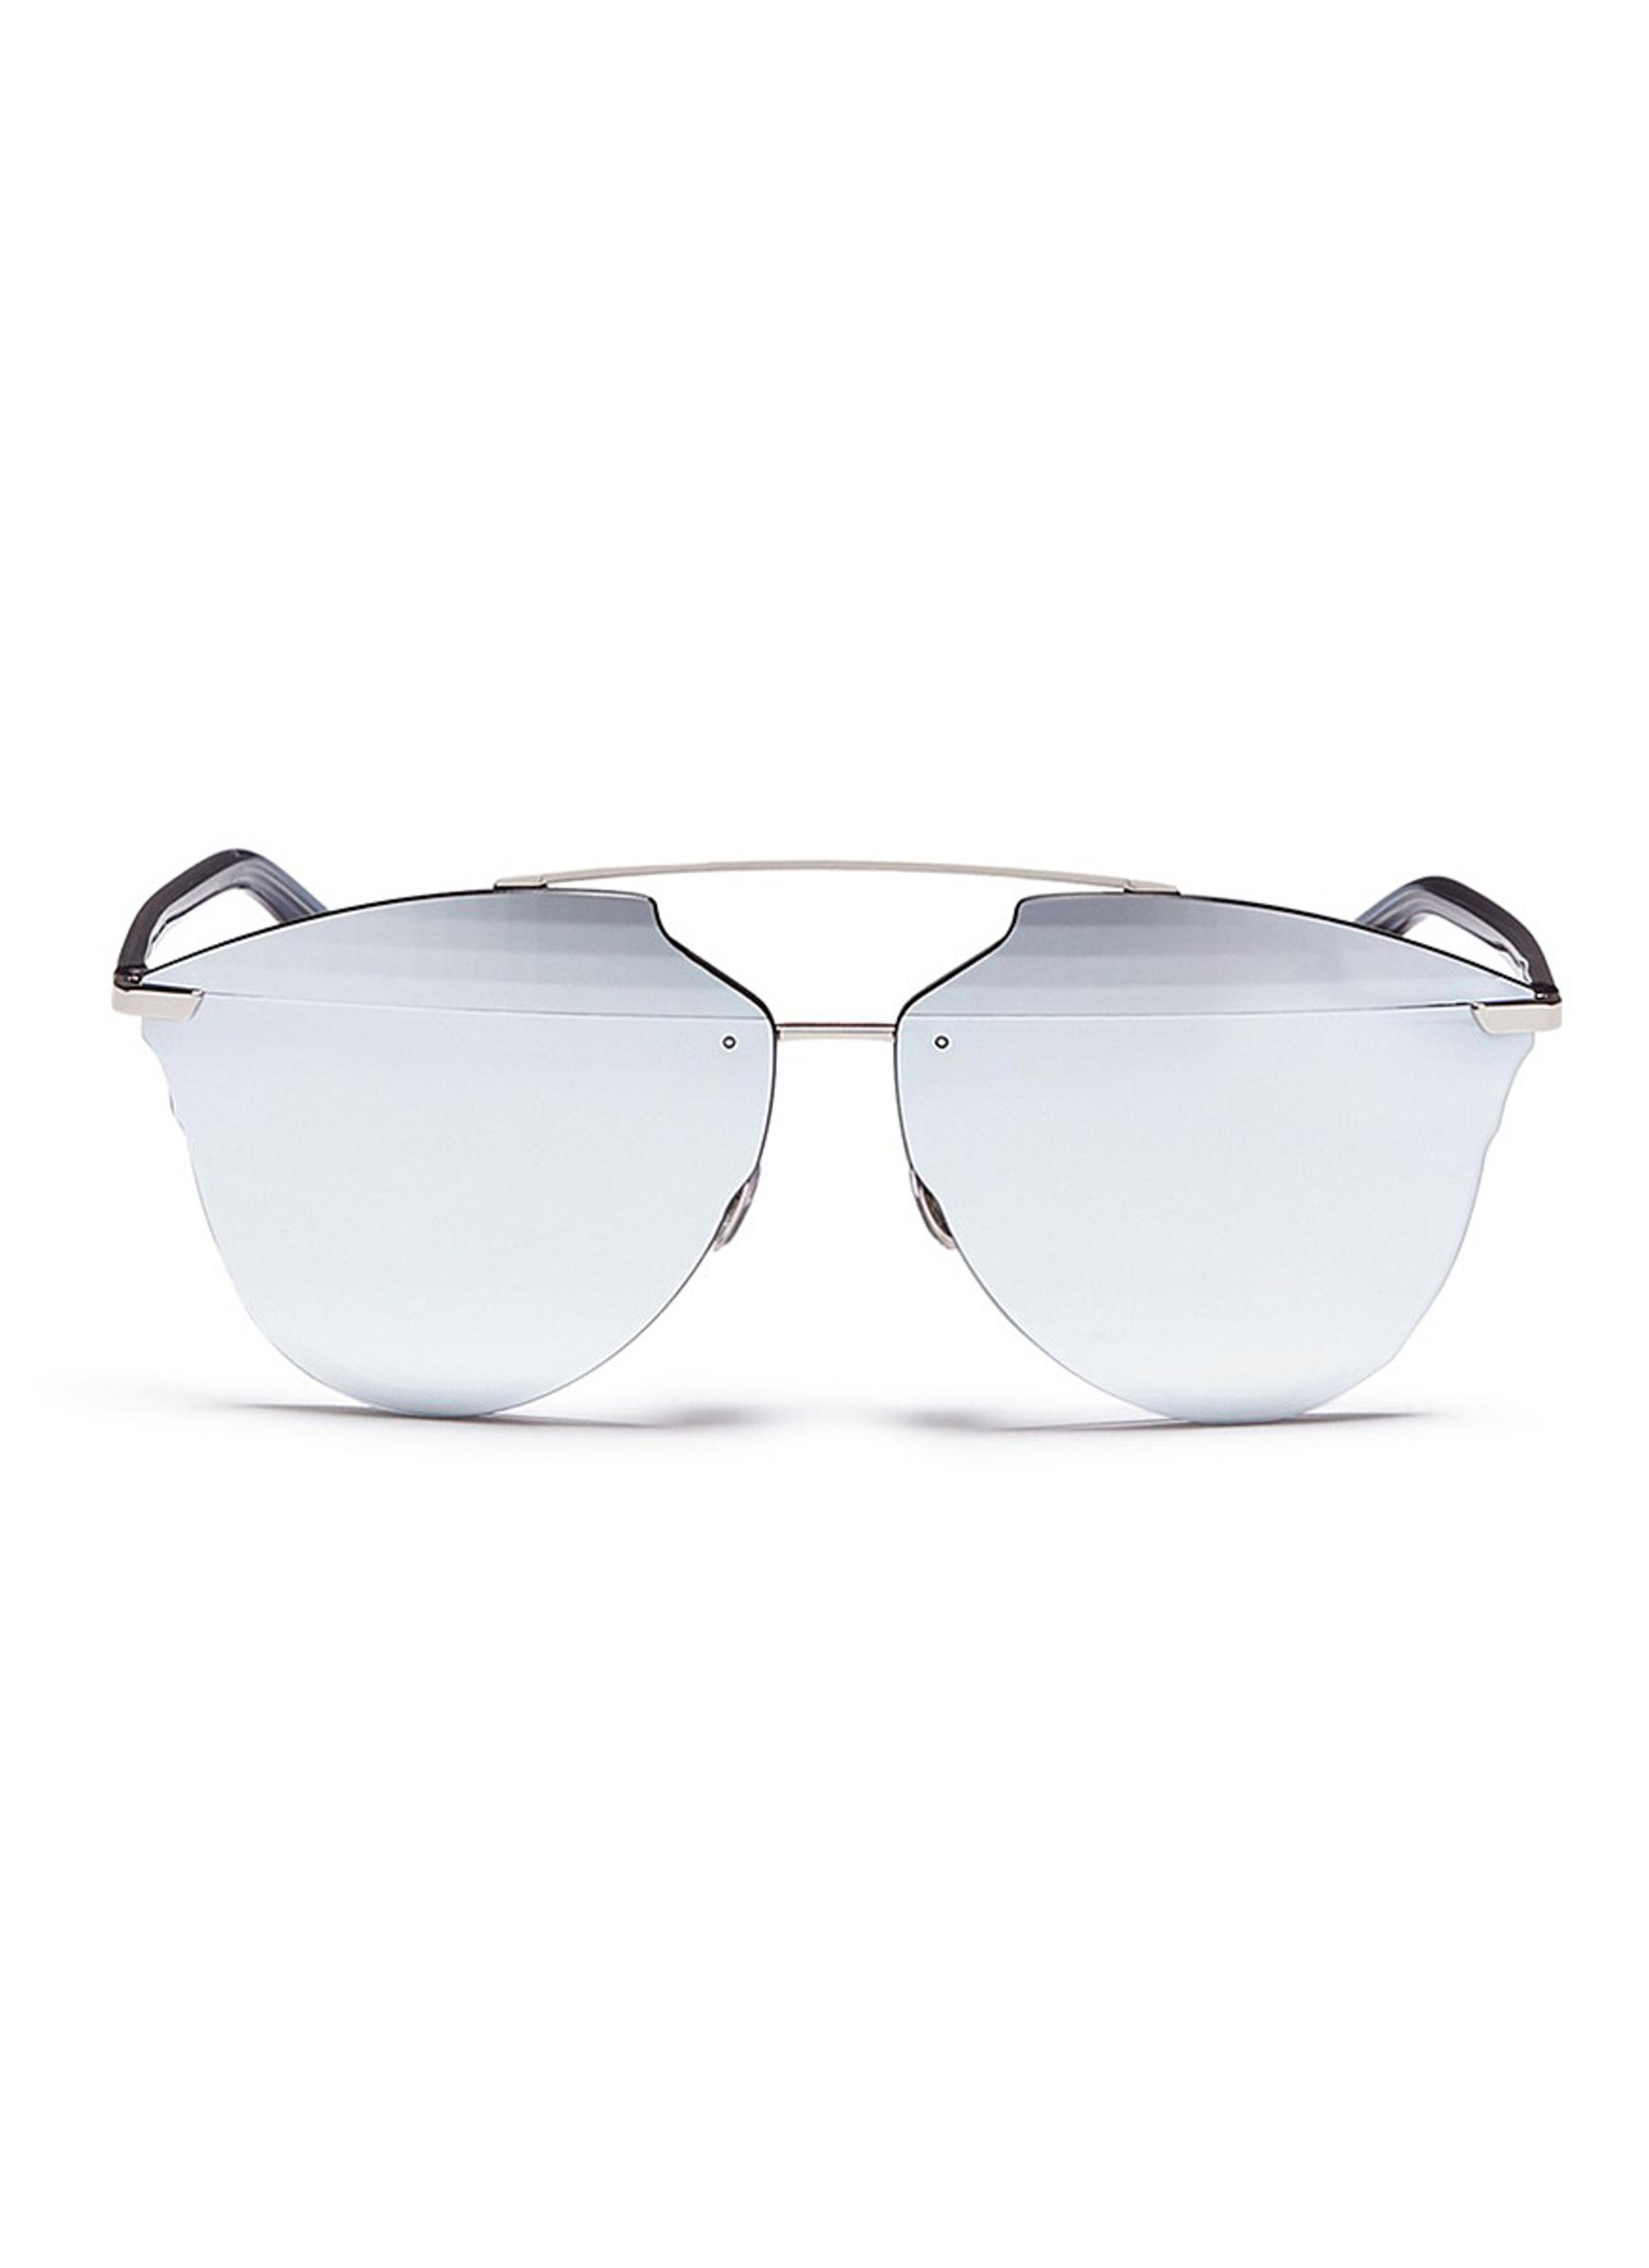 b585689435 201866588.  Dior Reflected  prism effect mounted mirror lens sunglasses